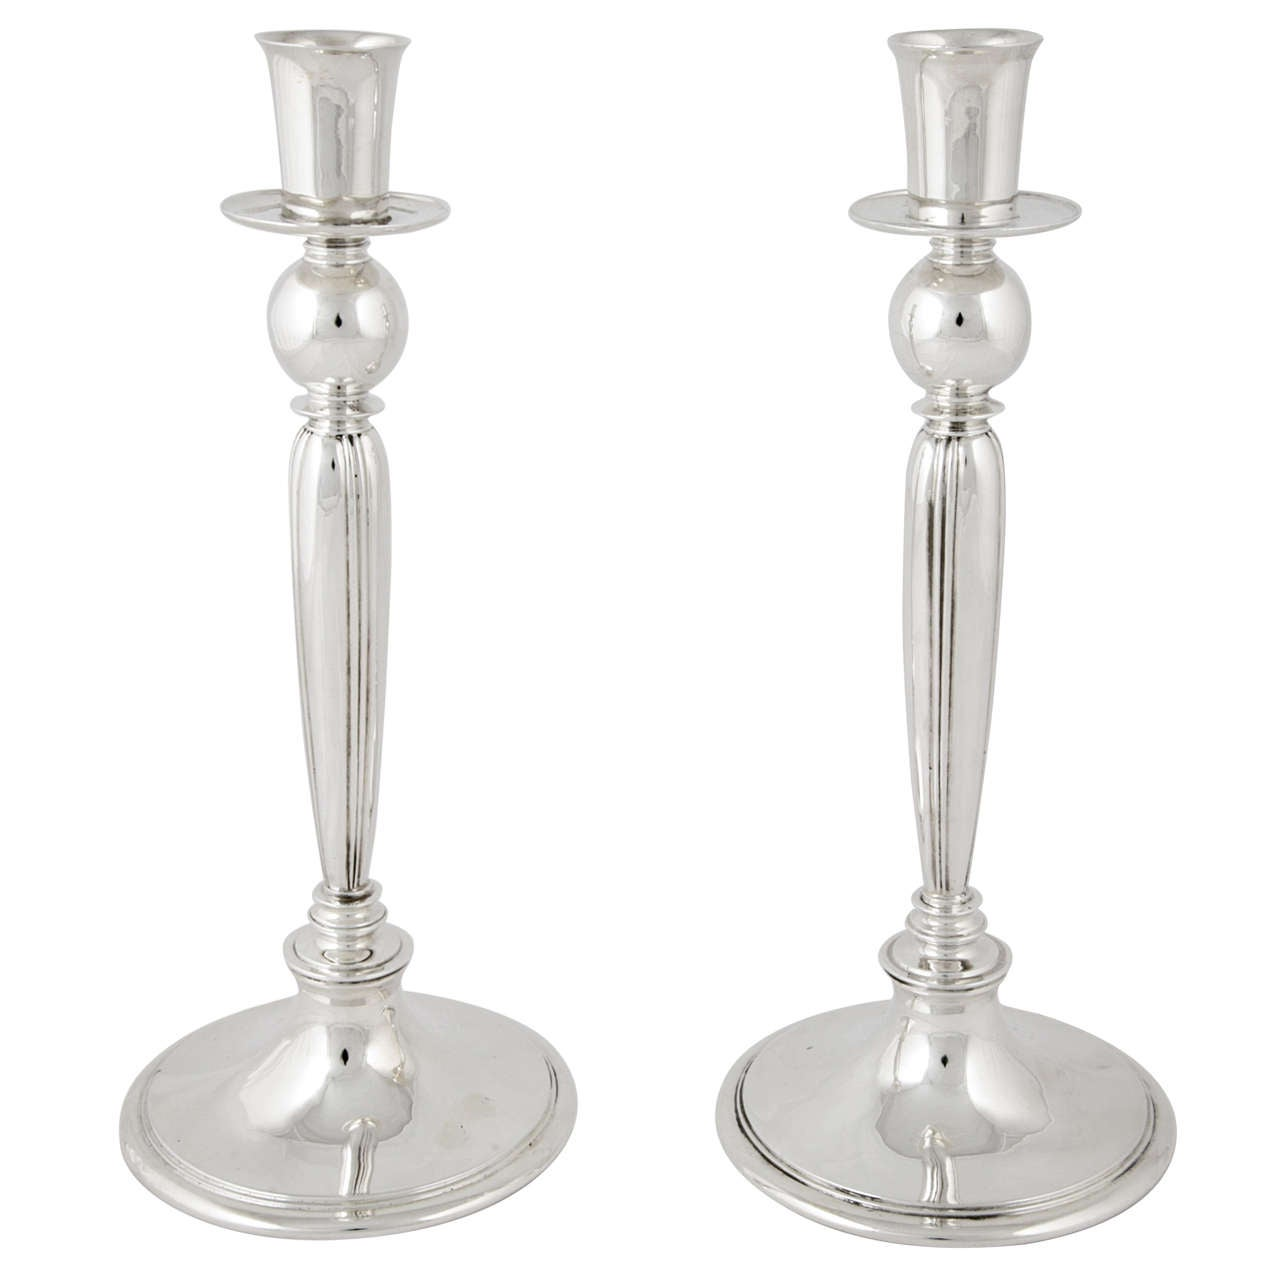 Pair of Sterling Silver Candlesticks